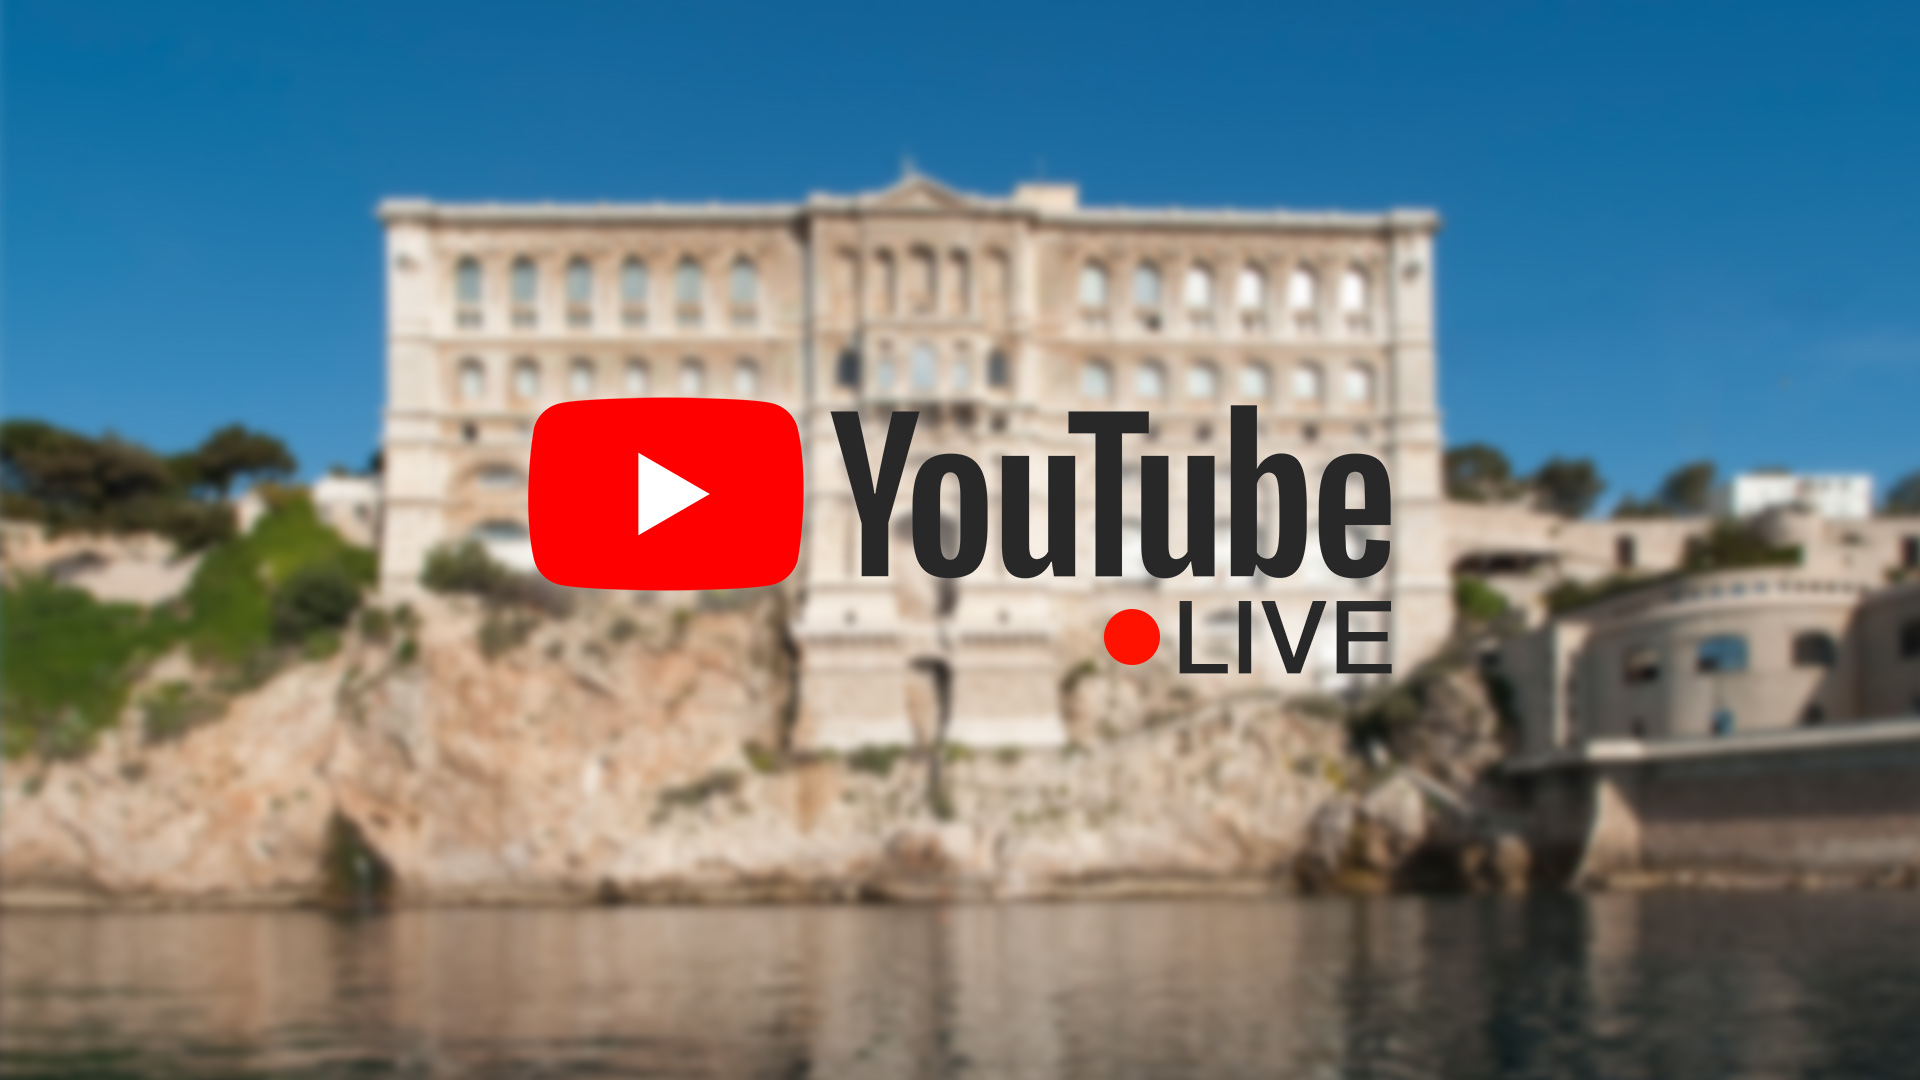 Couverture Live Youtube